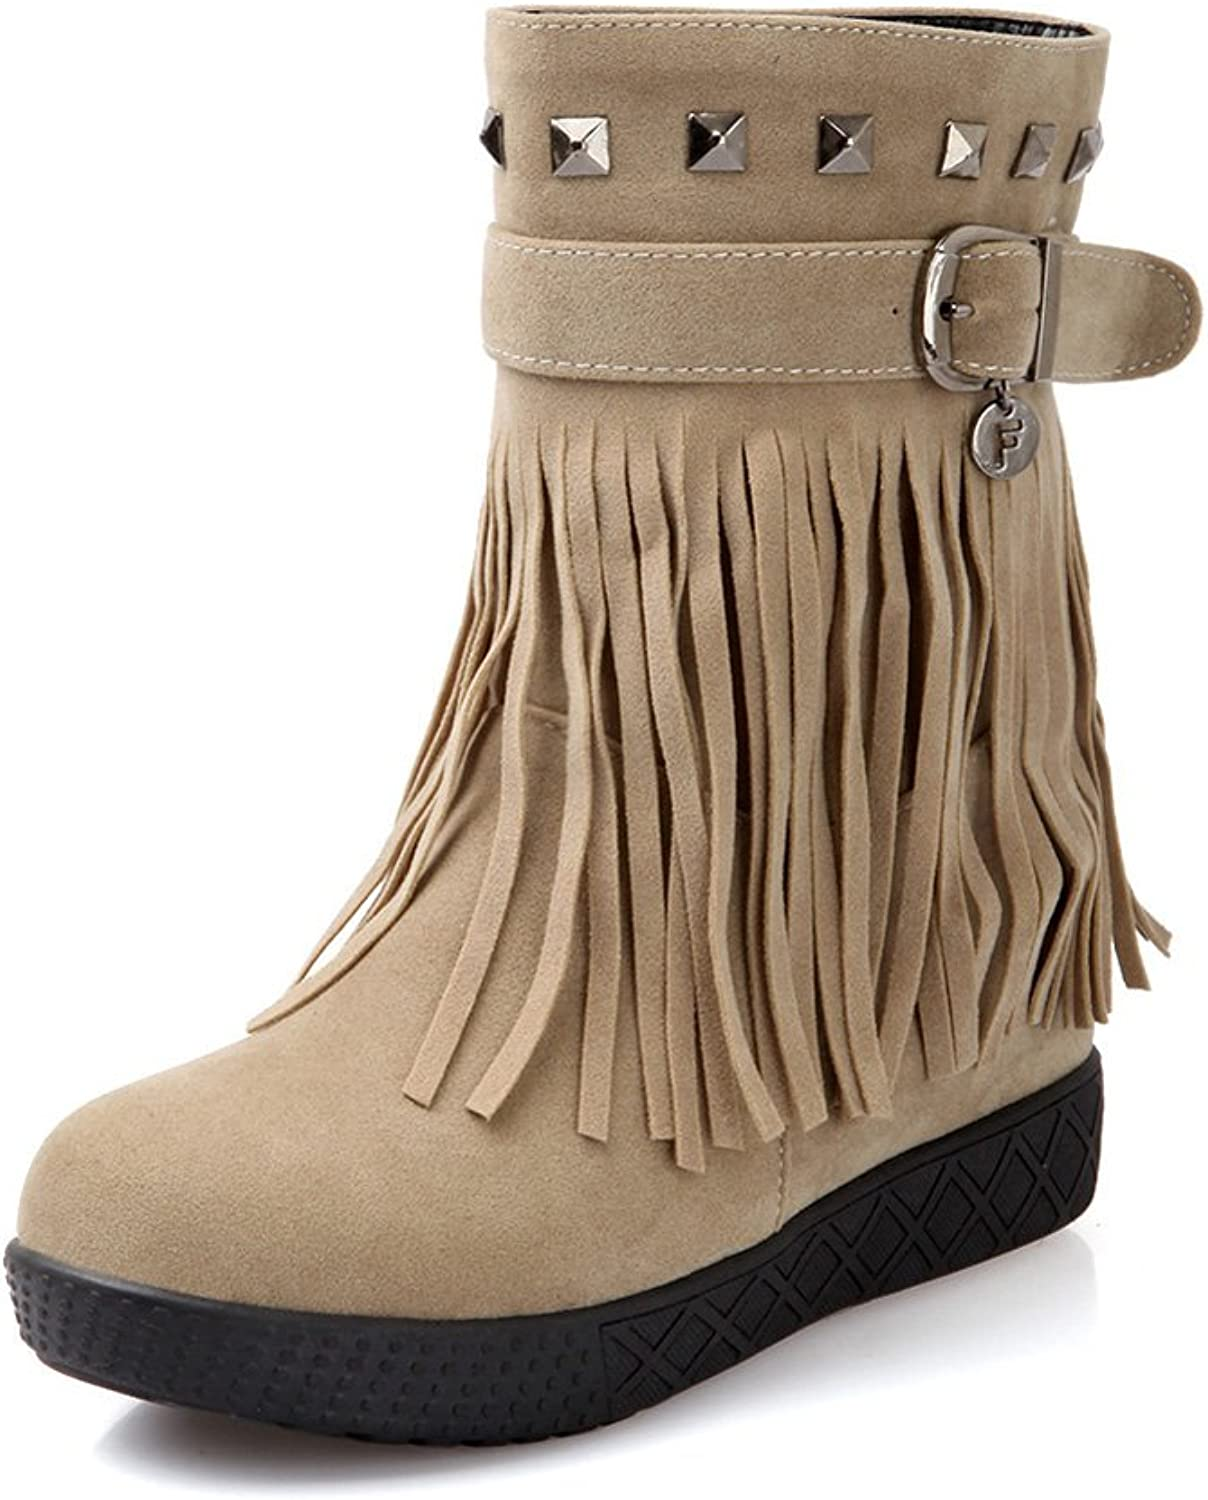 Lucksender Womens Fashion Round Toe Flat Frosted Fringed Tassel Ankle Boots with Rivet